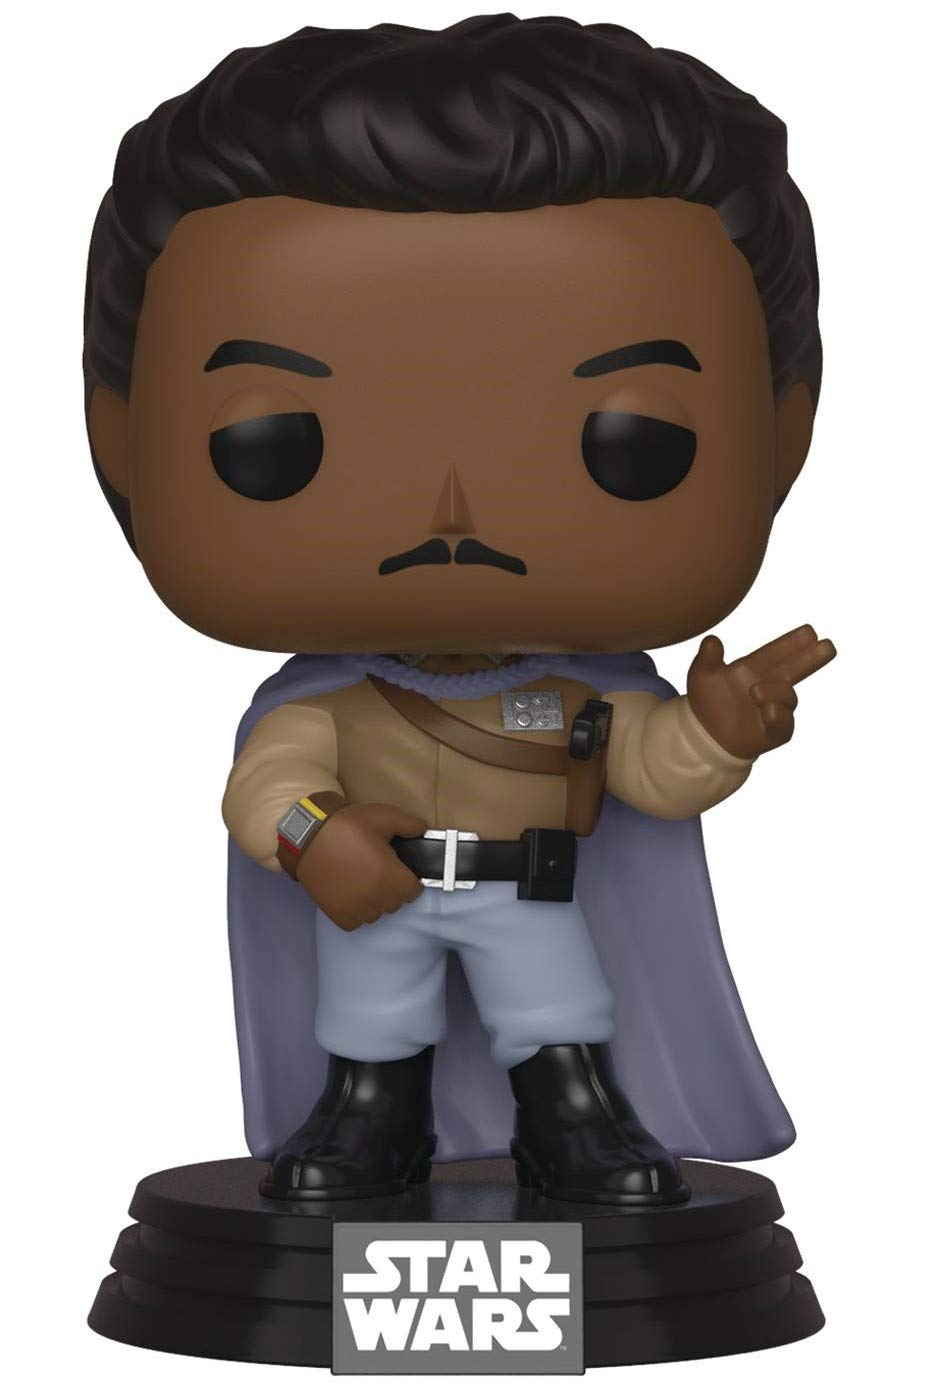 Star Wars: Return of The Jedi – General Lando Calrissian Funko Pop! Figura de Vinilo con Cabeza de Burbuja (Incluye Funda Protectora de Caja de Pop Compatible): Amazon.es: Juguetes y juegos